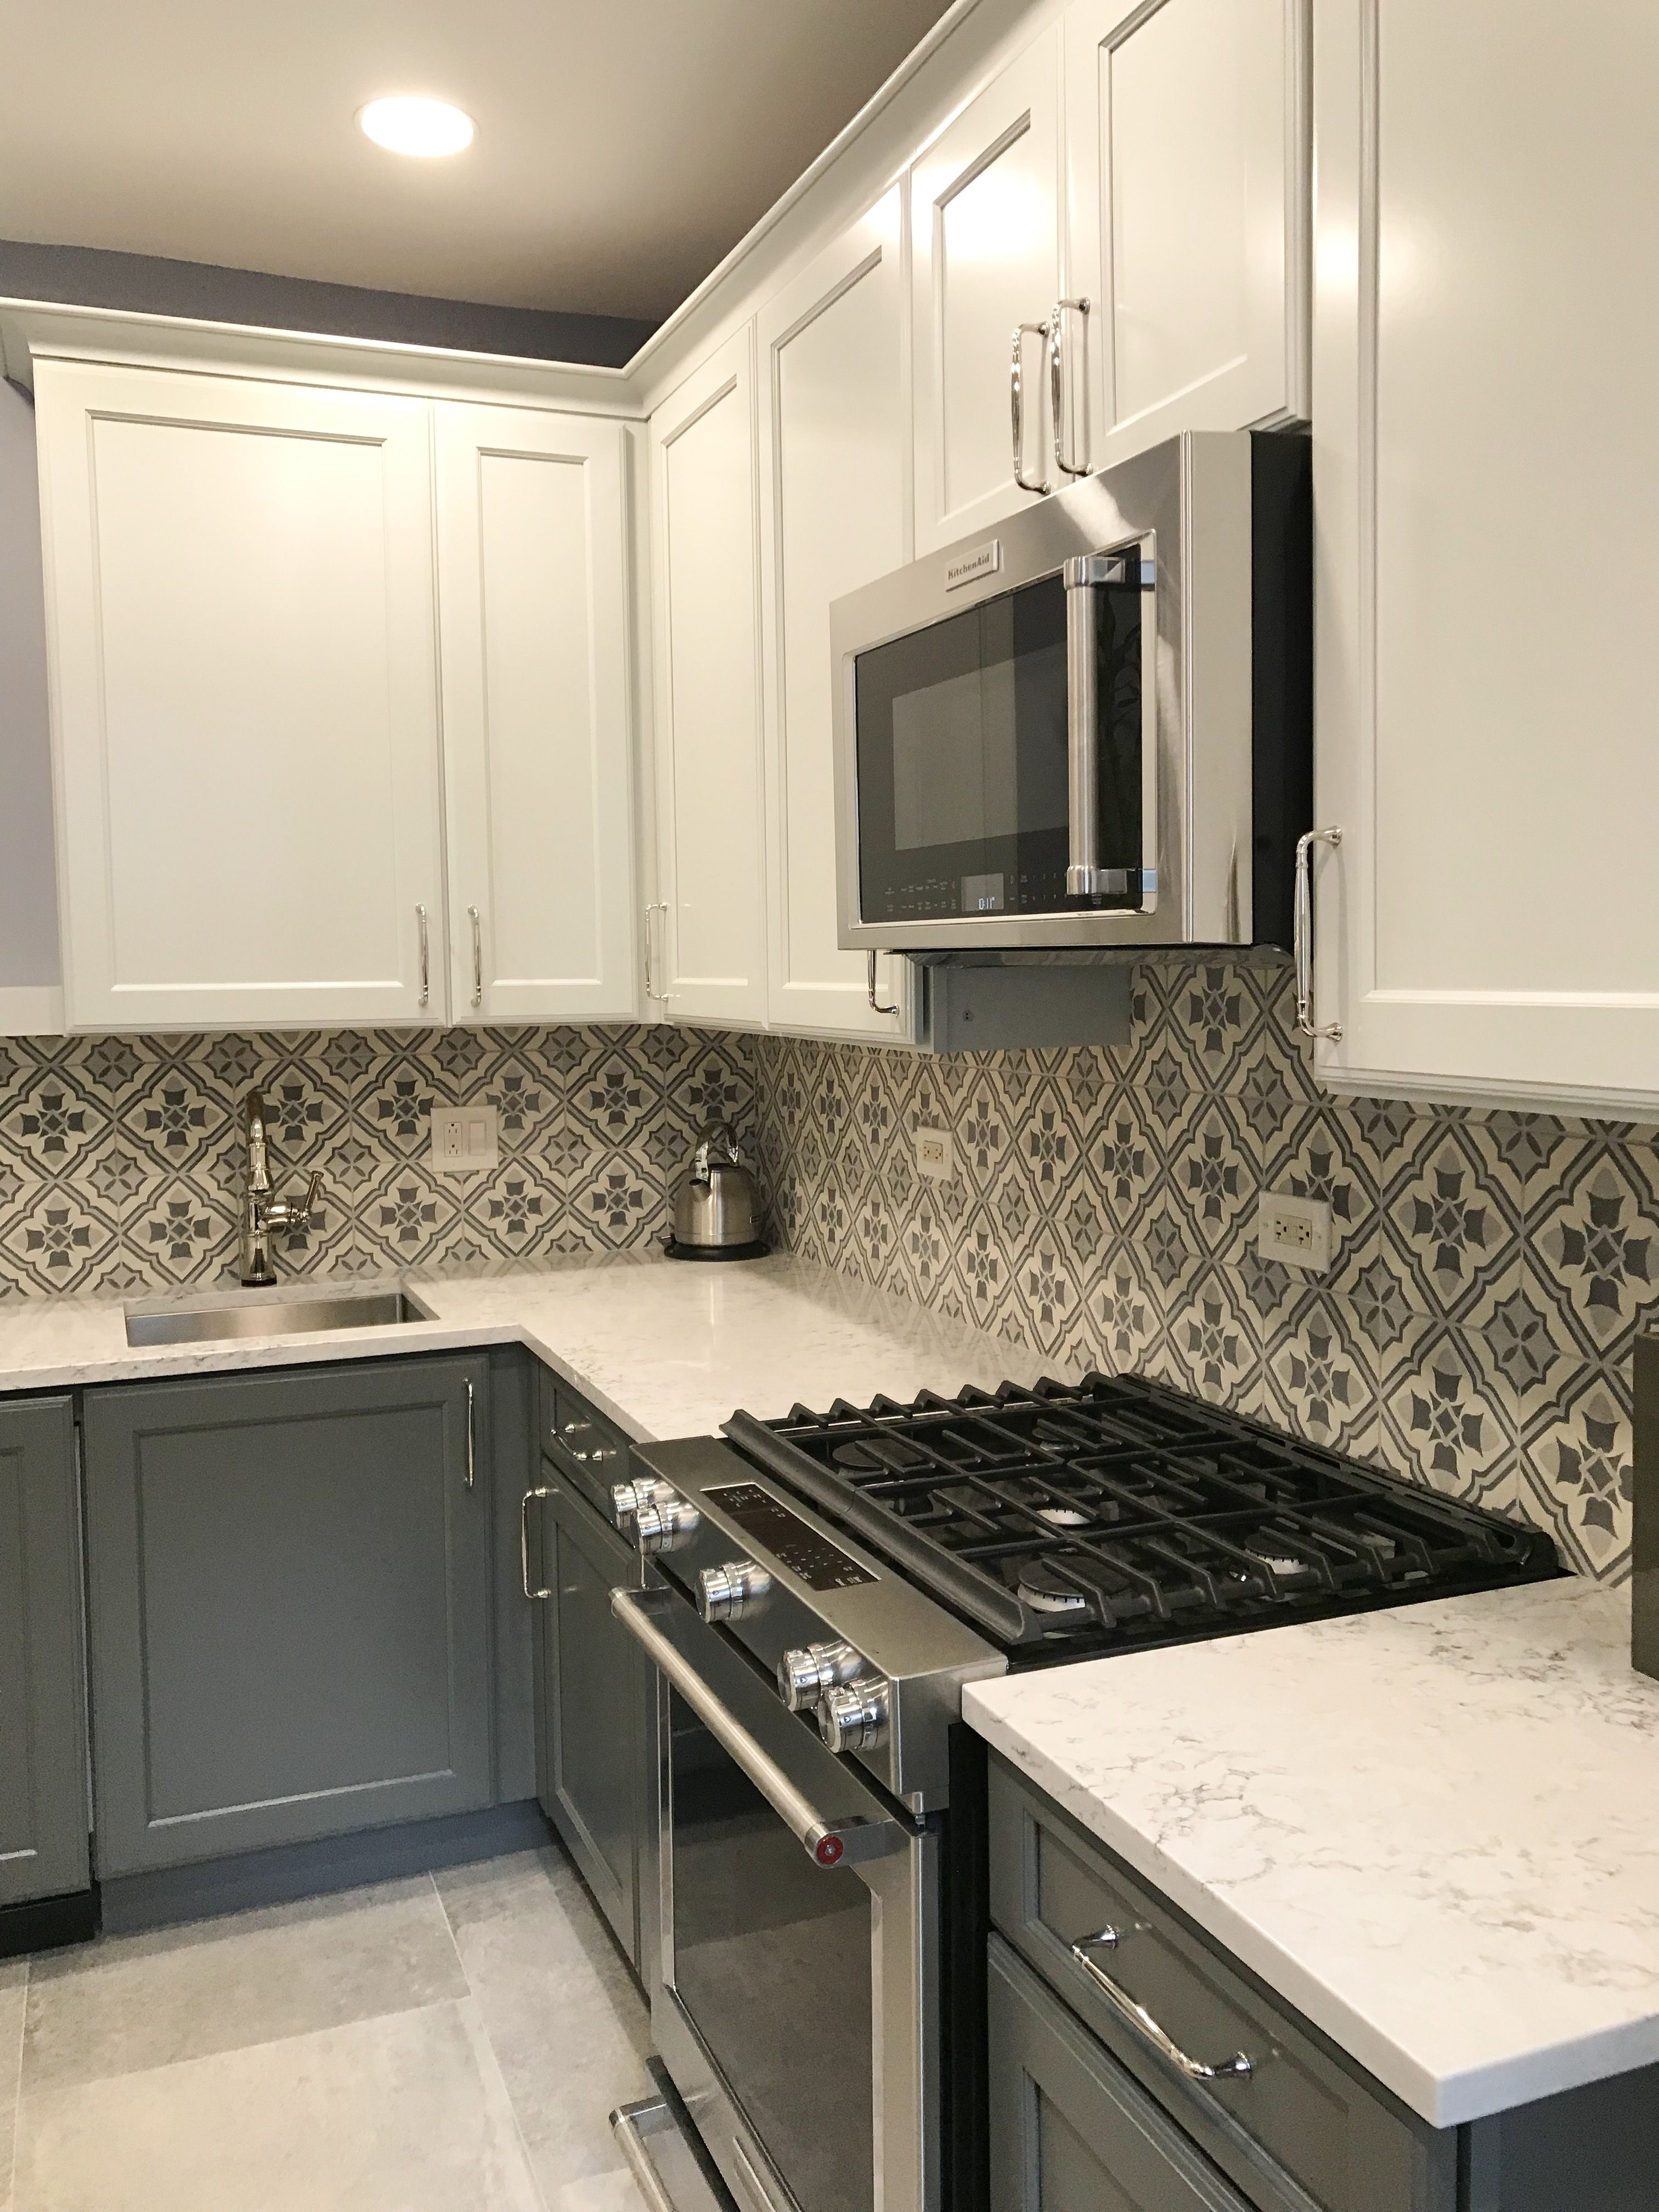 For more kitchen ideas and kitchen remodeling, please visit ...